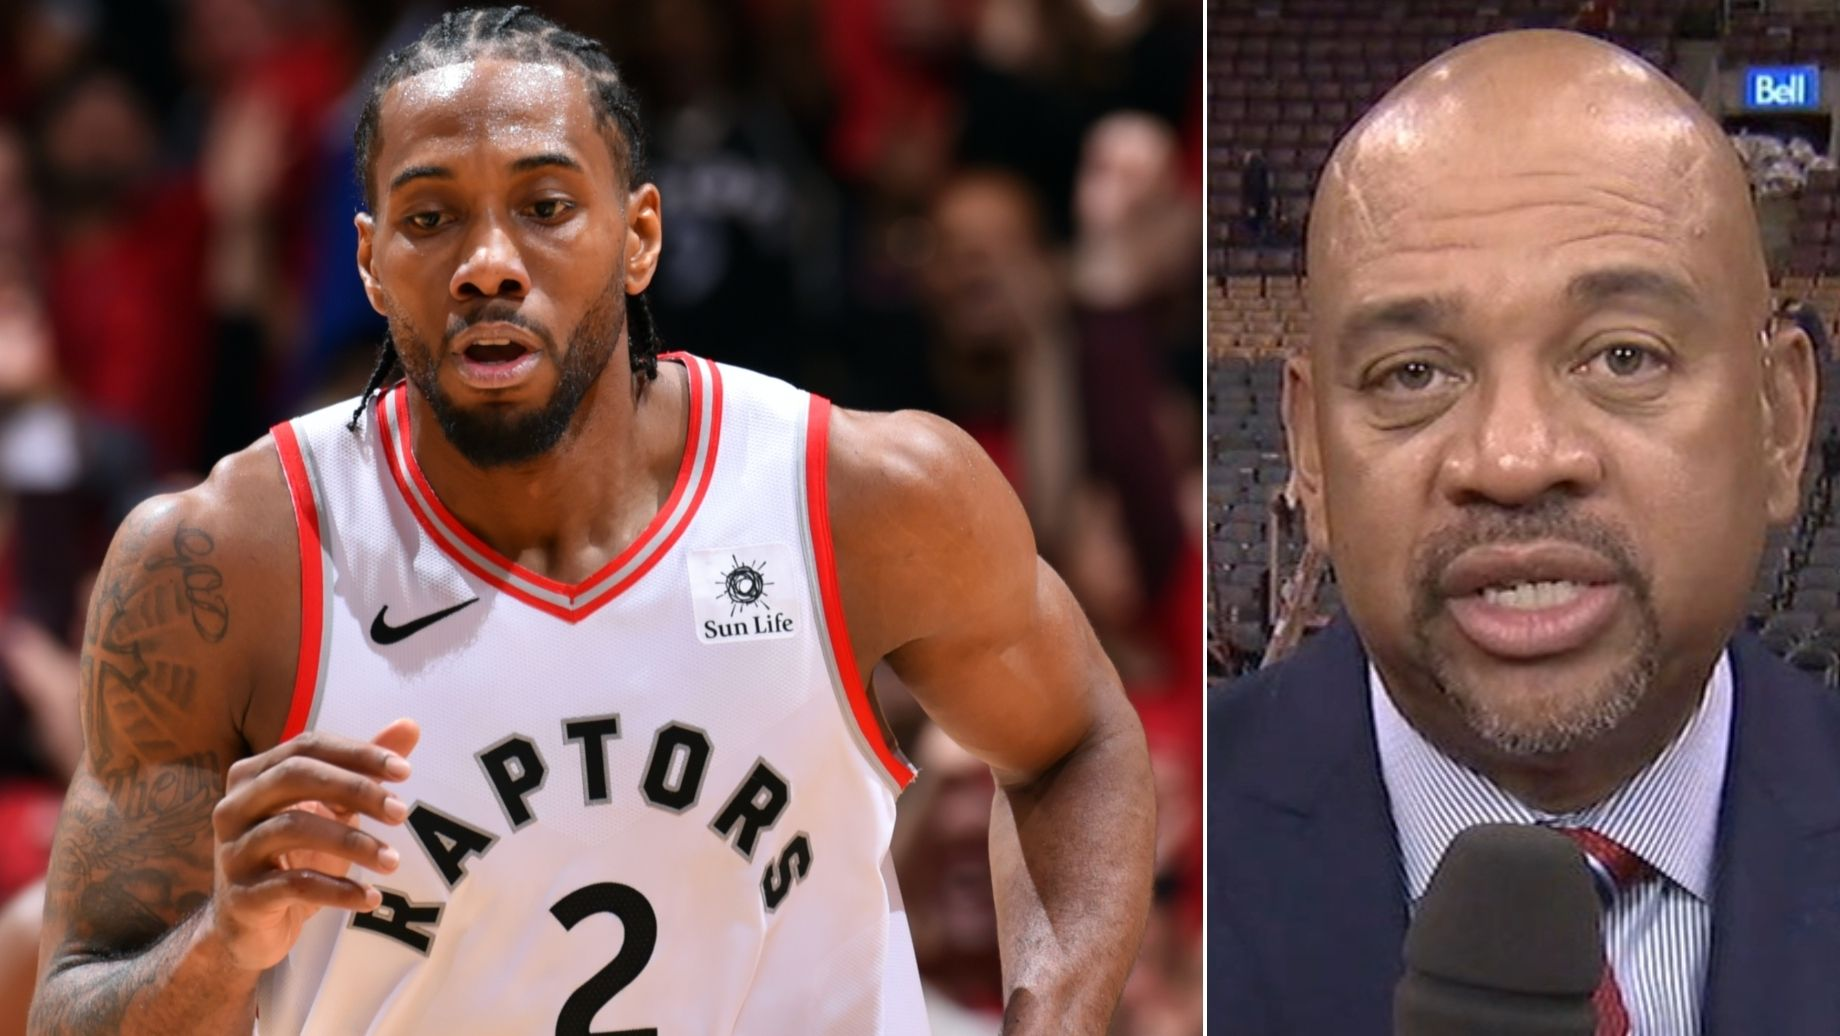 Wilbon: Kawhi was not himself in Game 4